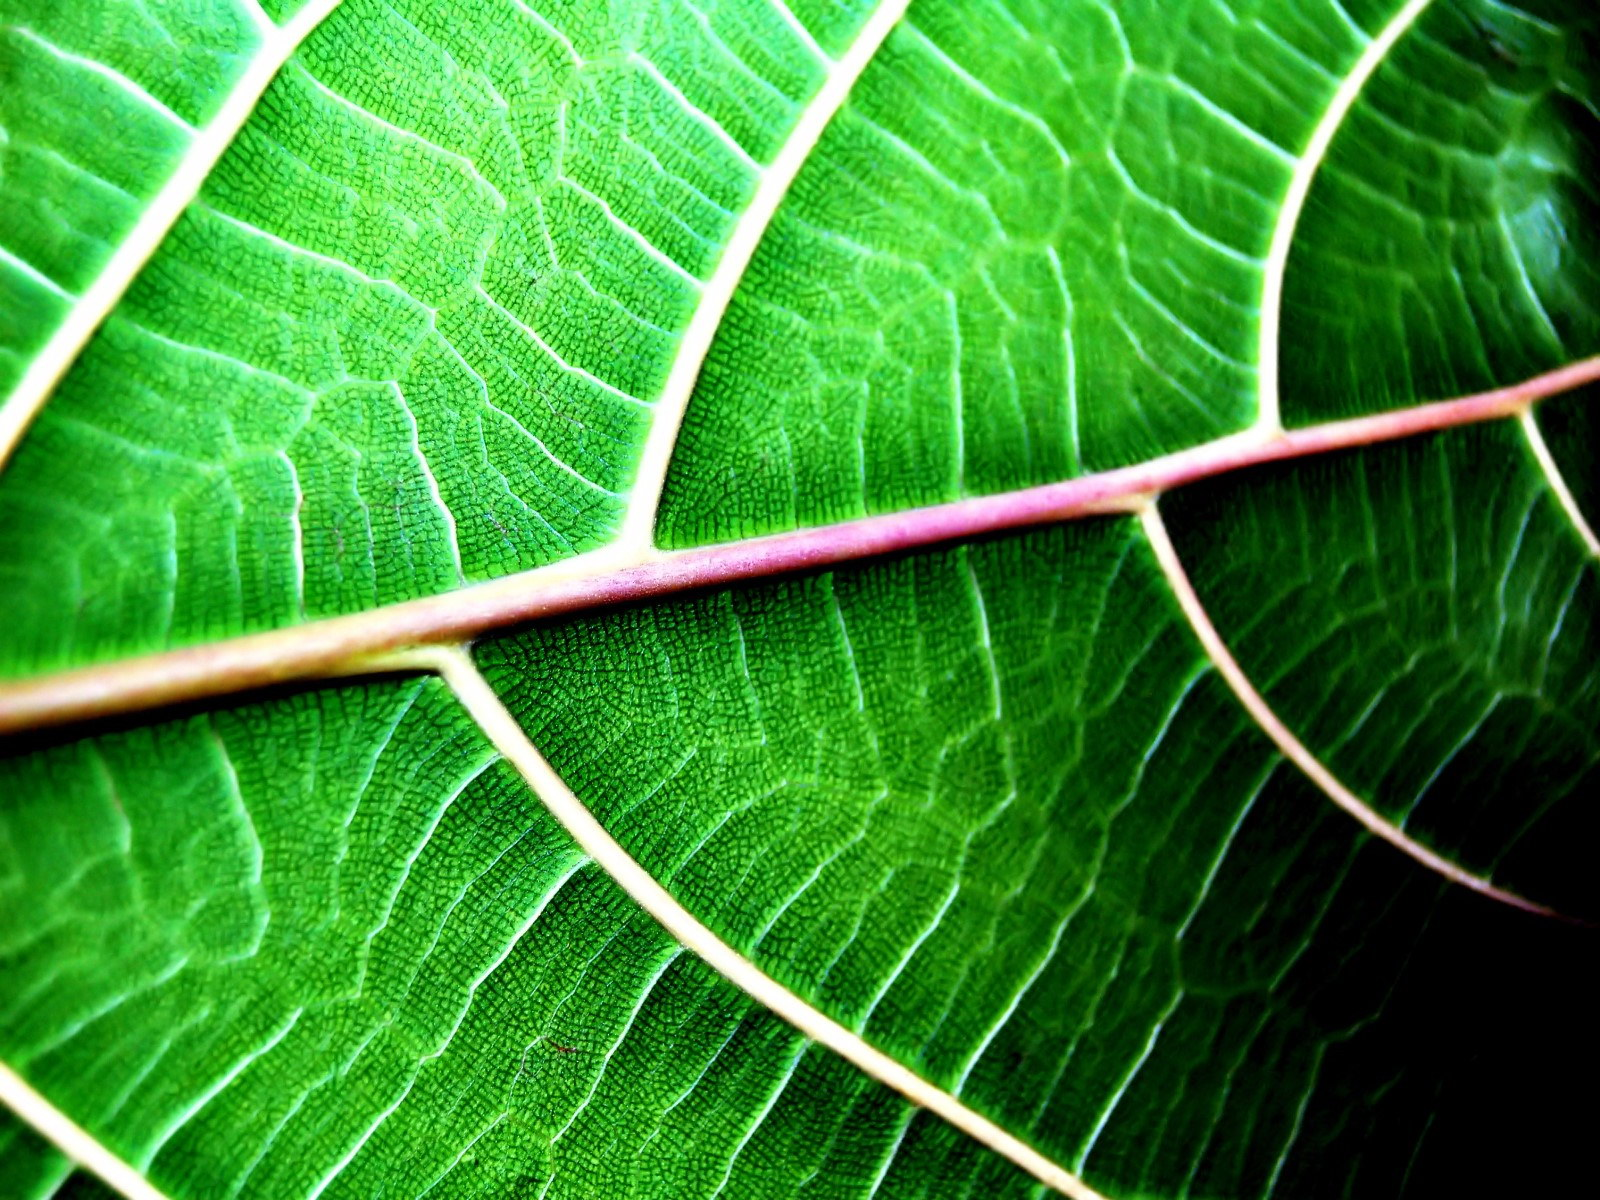 green leaf, download photo, texture, green leaves texture, background